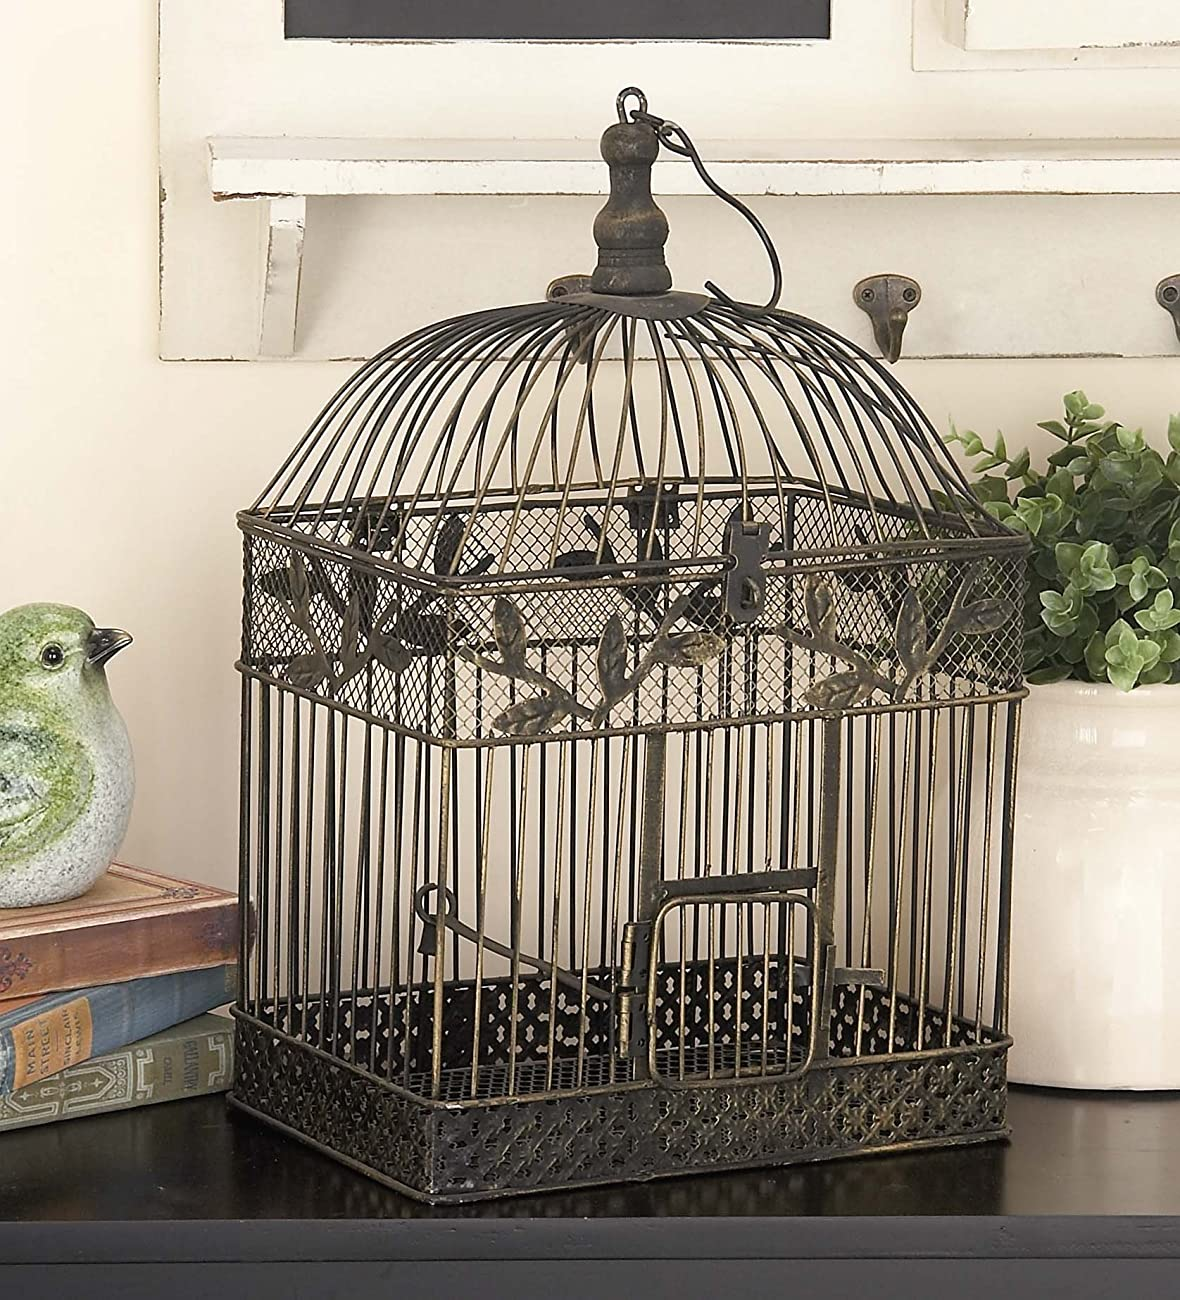 Deco 79 88016 2-Piece Metal Square Bird Cage Set 1